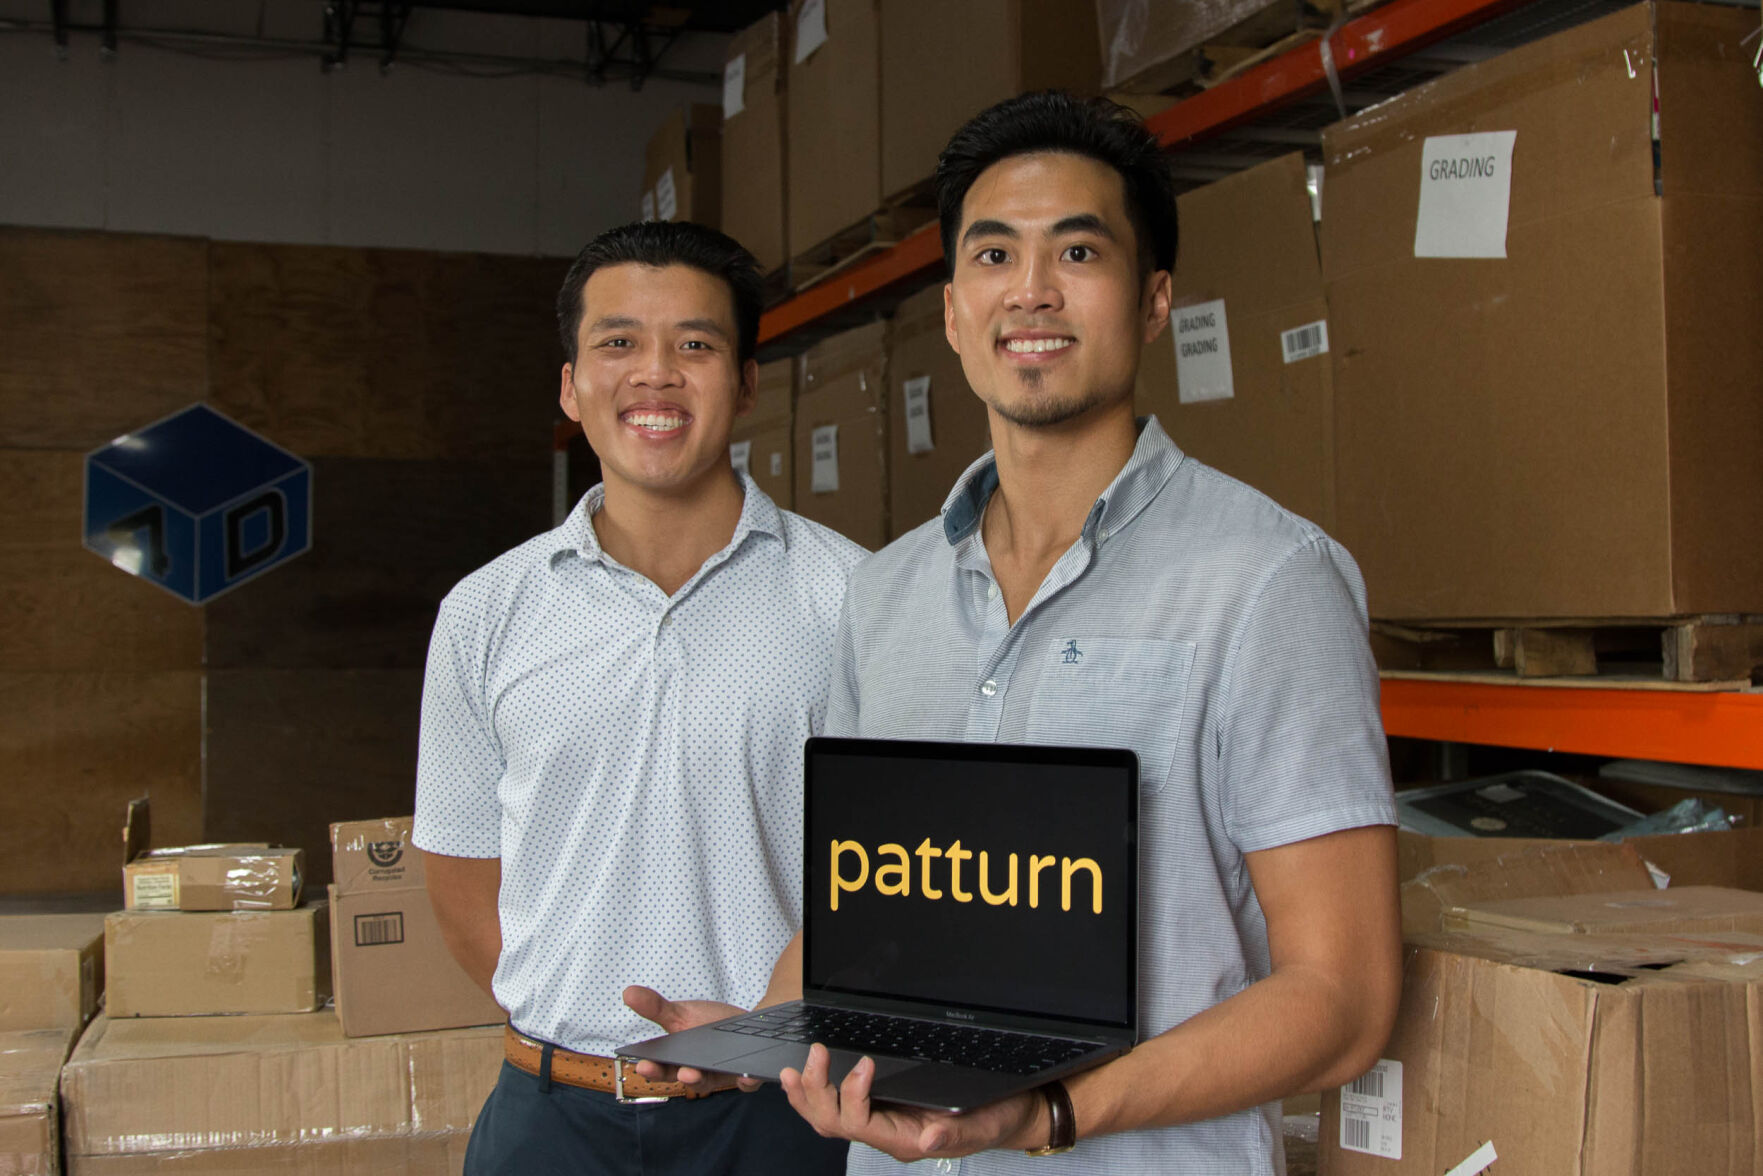 UTA alumni help retailers manage customer-returned products with software startup Patturn